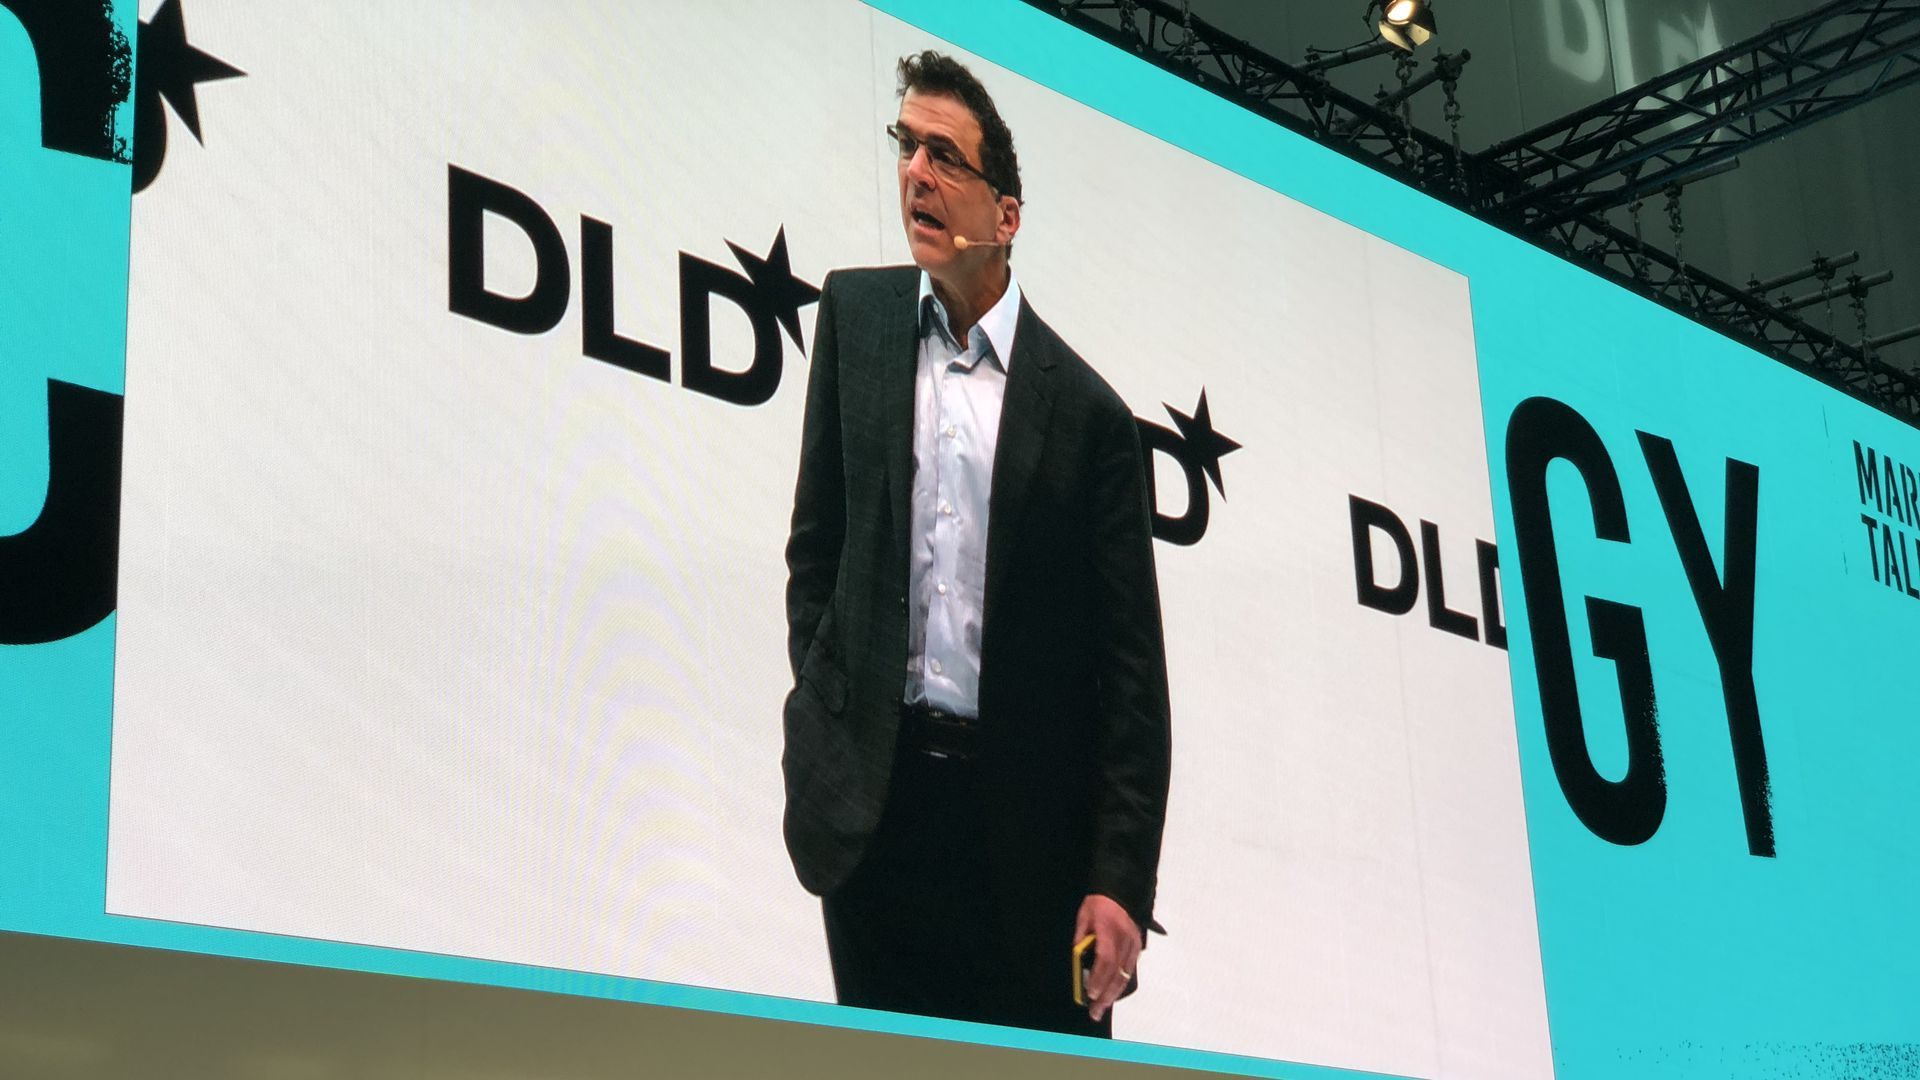 Facebook VP Elliot Schrage, speaking at DLD 18 in Munich